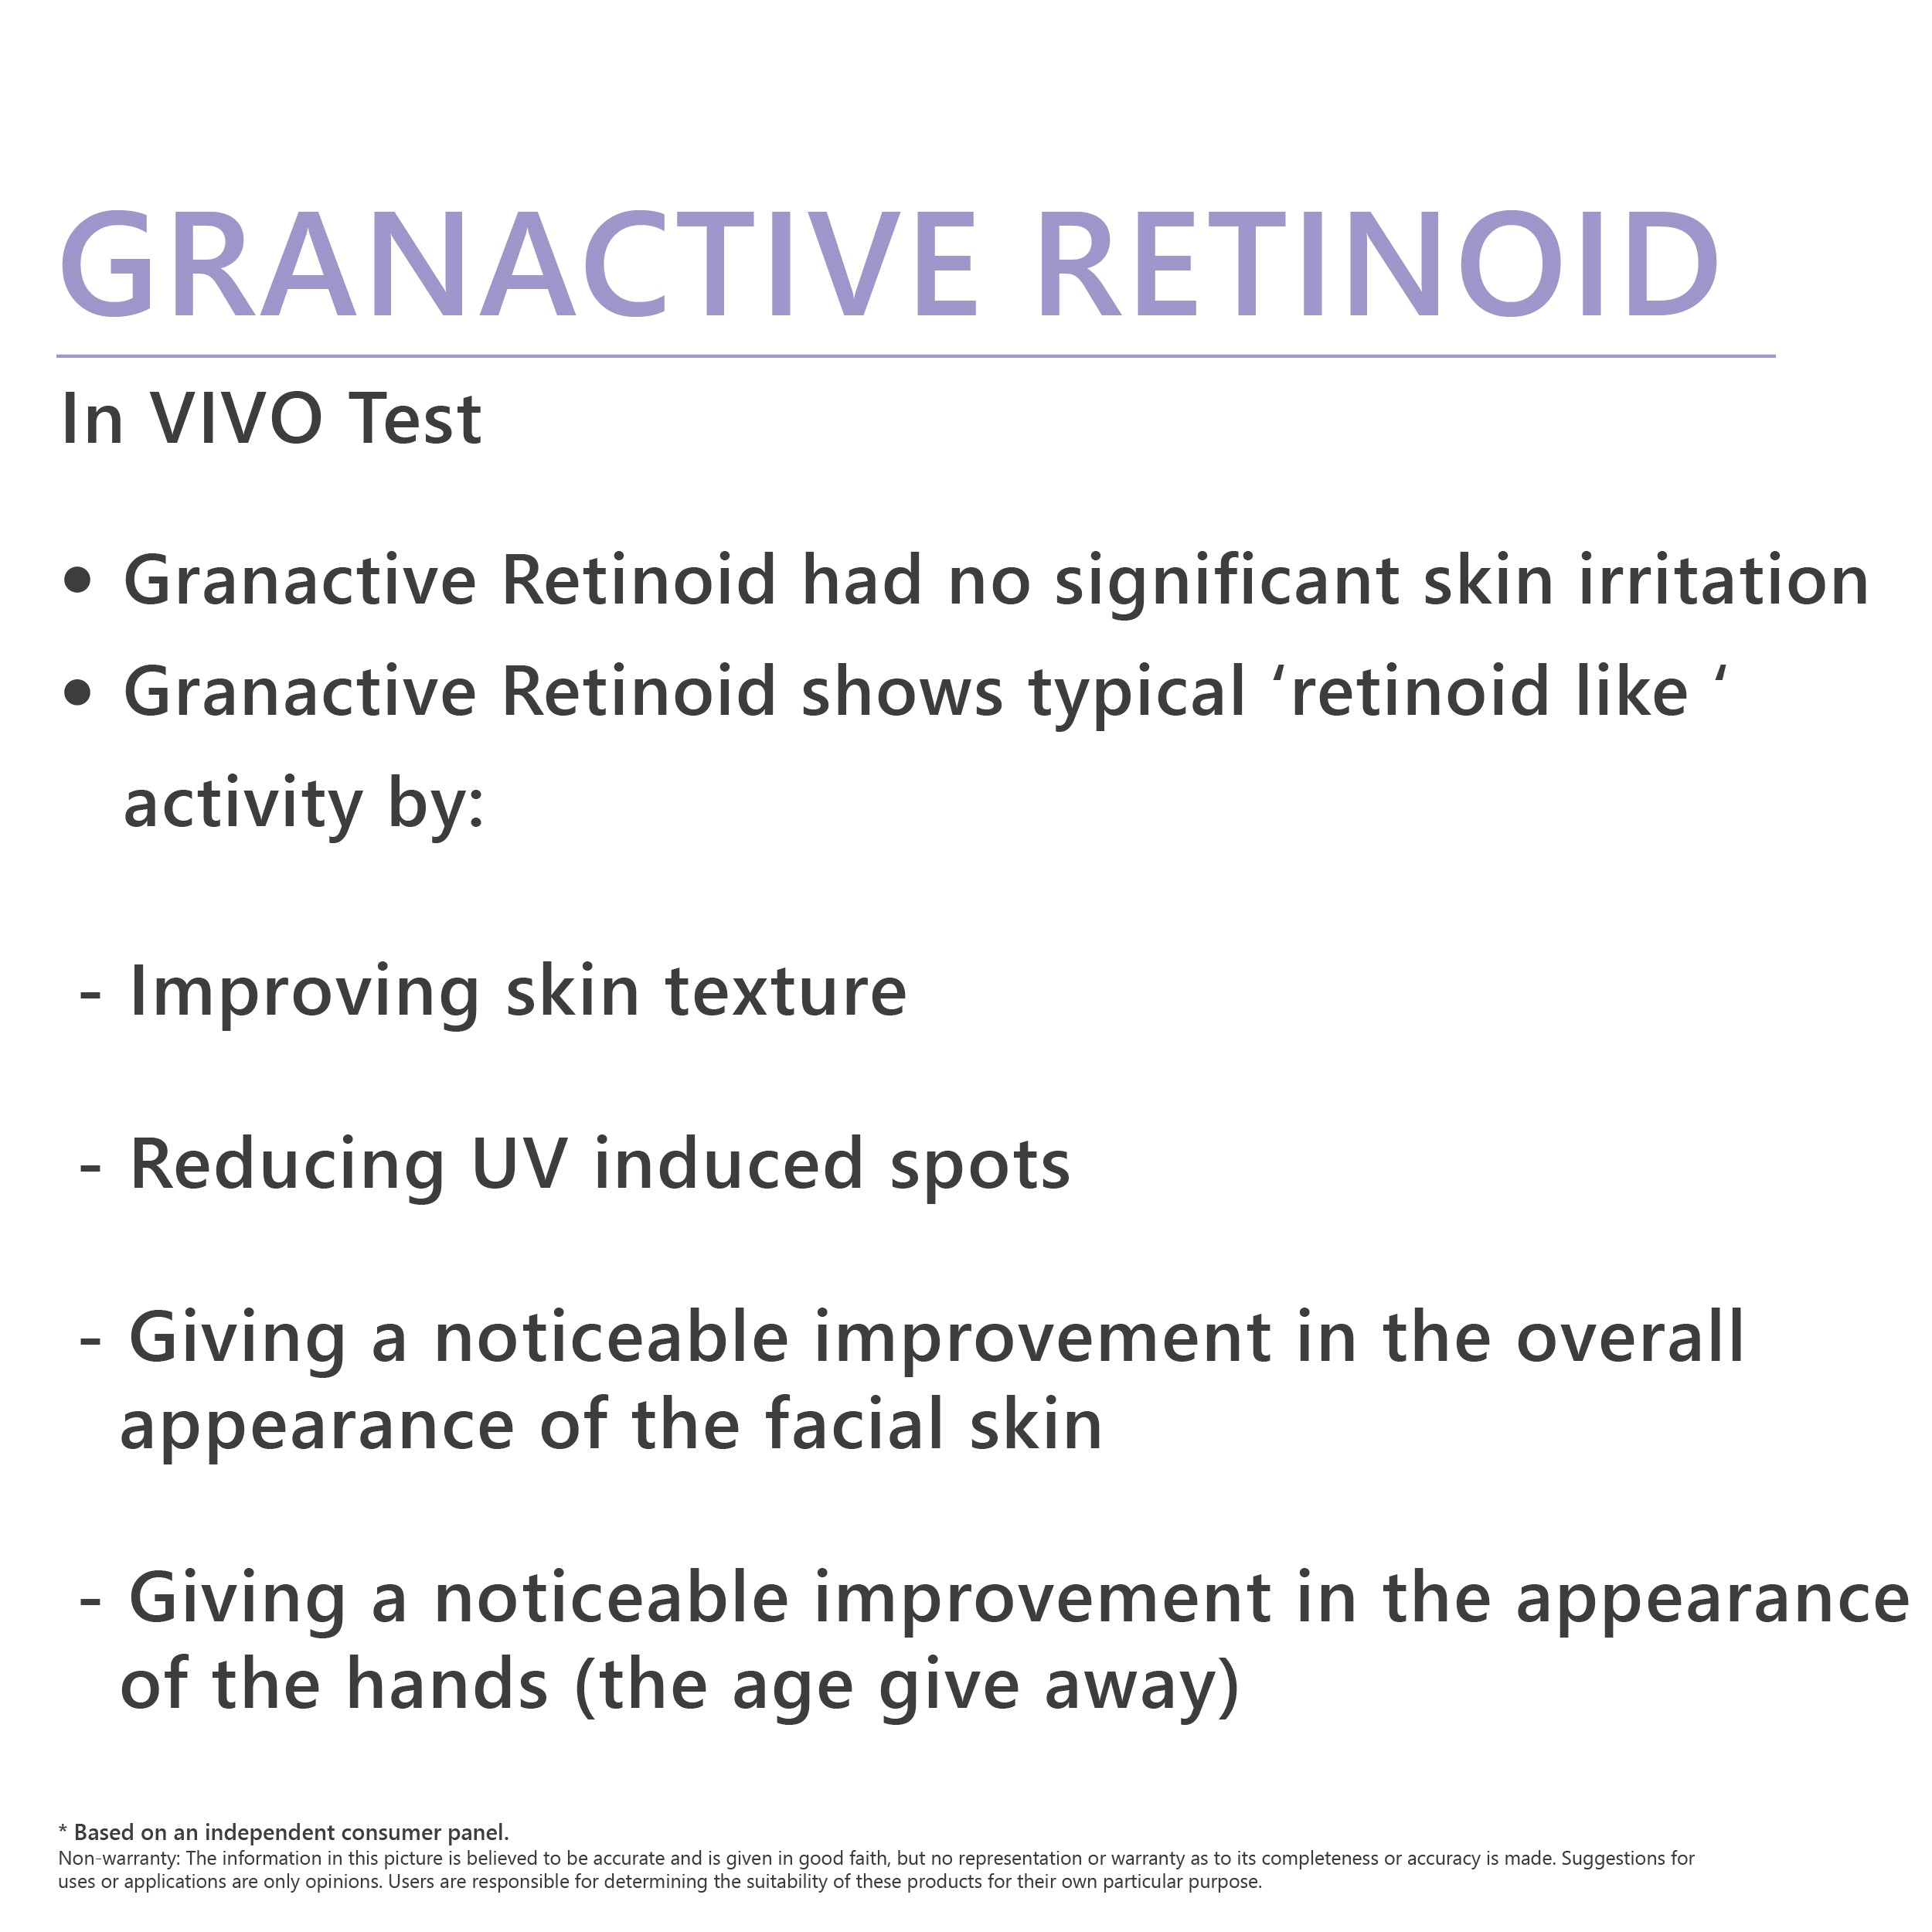 RAPID RENEW CONCENTRATE WITH 2% RETINOID + SQUALANE - GRANTACTIVE RETINOID COMPLEX